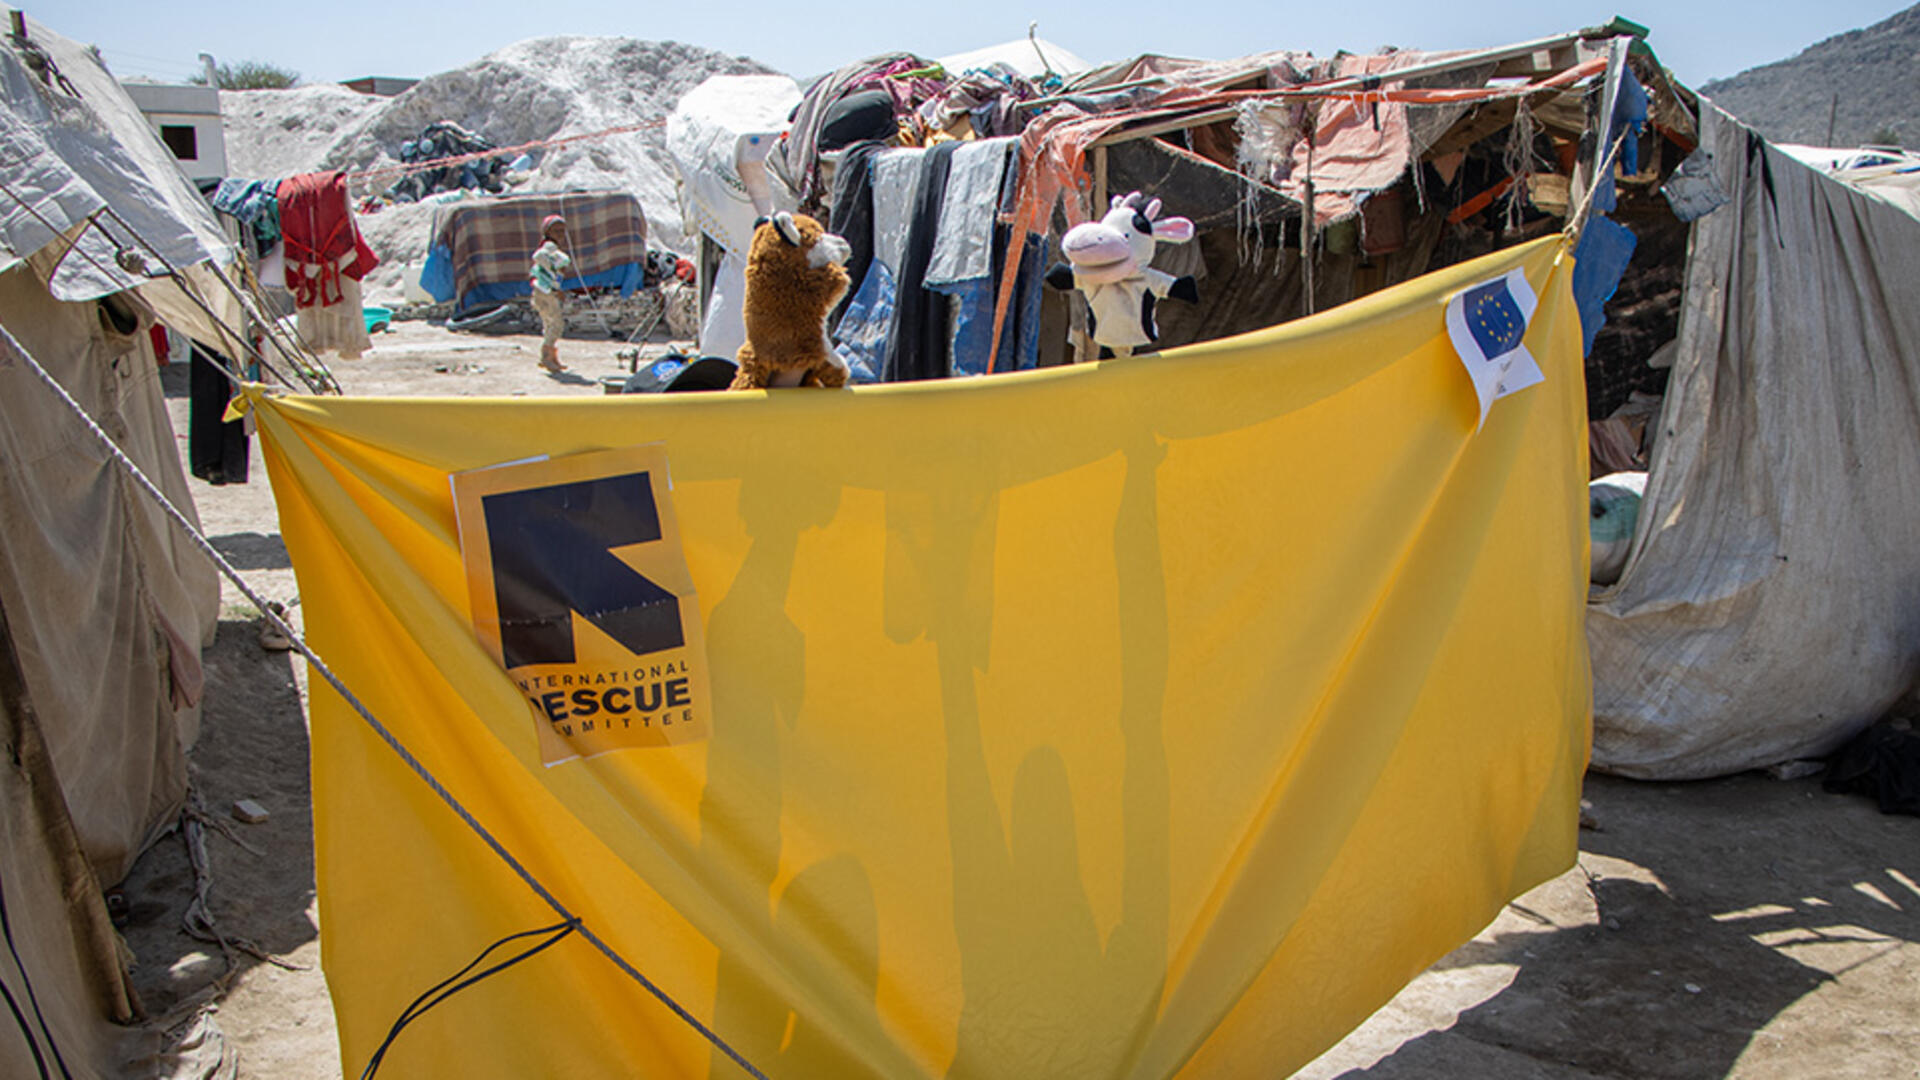 Outside in Al-Manshar camp in Yemen, a yellow tarp is set up between tents. Just above the tarp are a fox and cow puppet, part of the show to teach children about COVID-19.